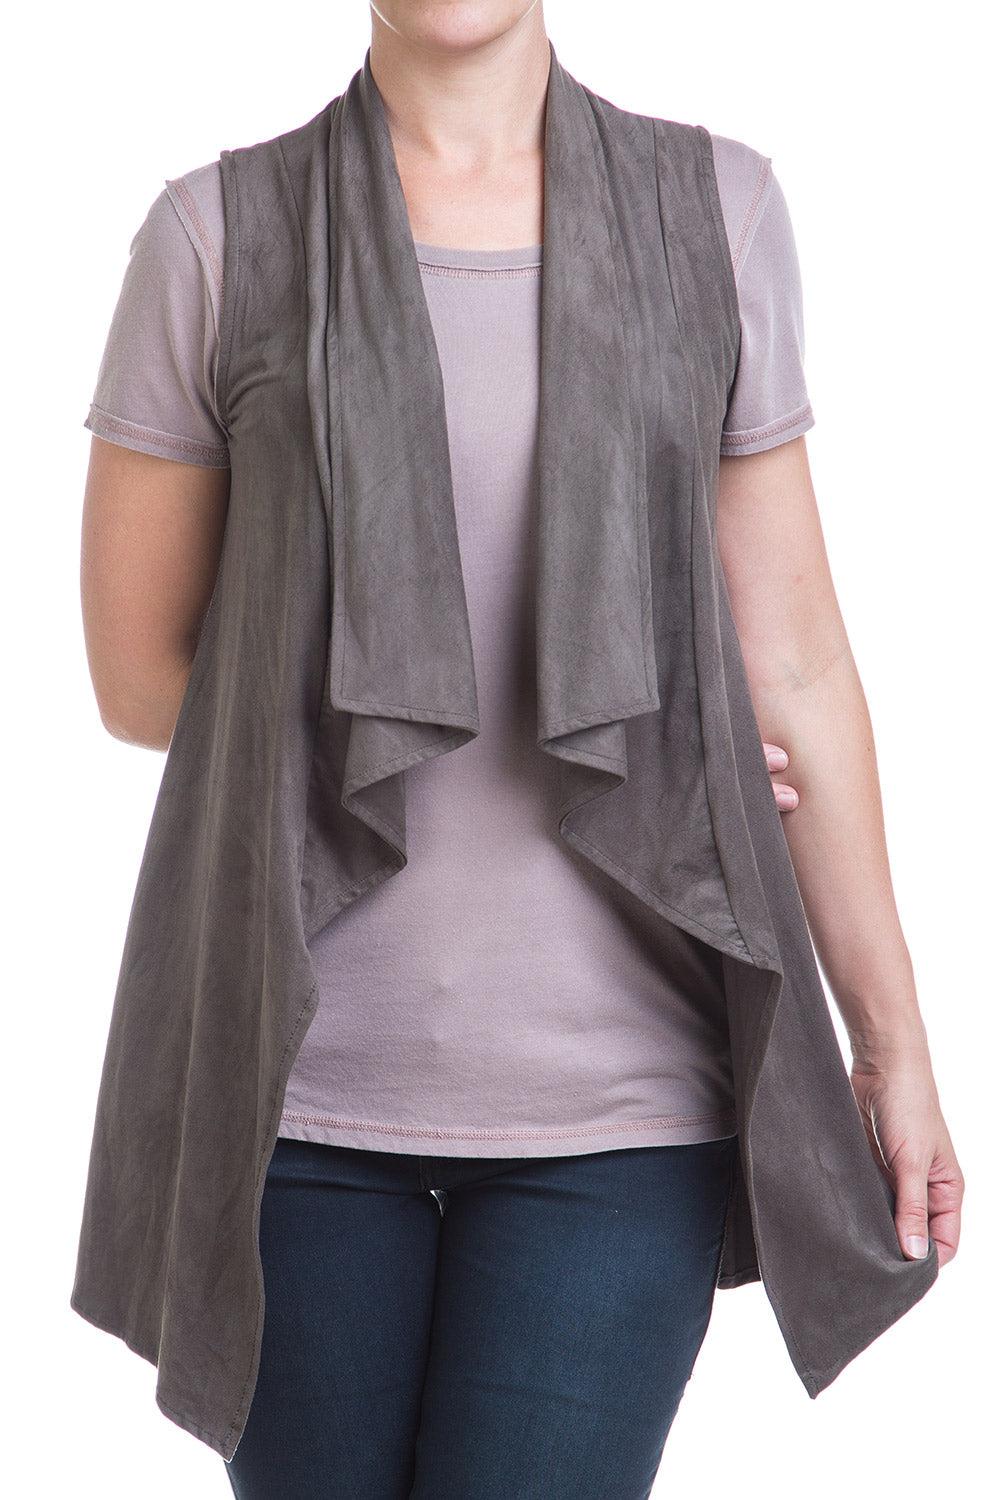 Type 2 Smooth, Soft and Suede Vest